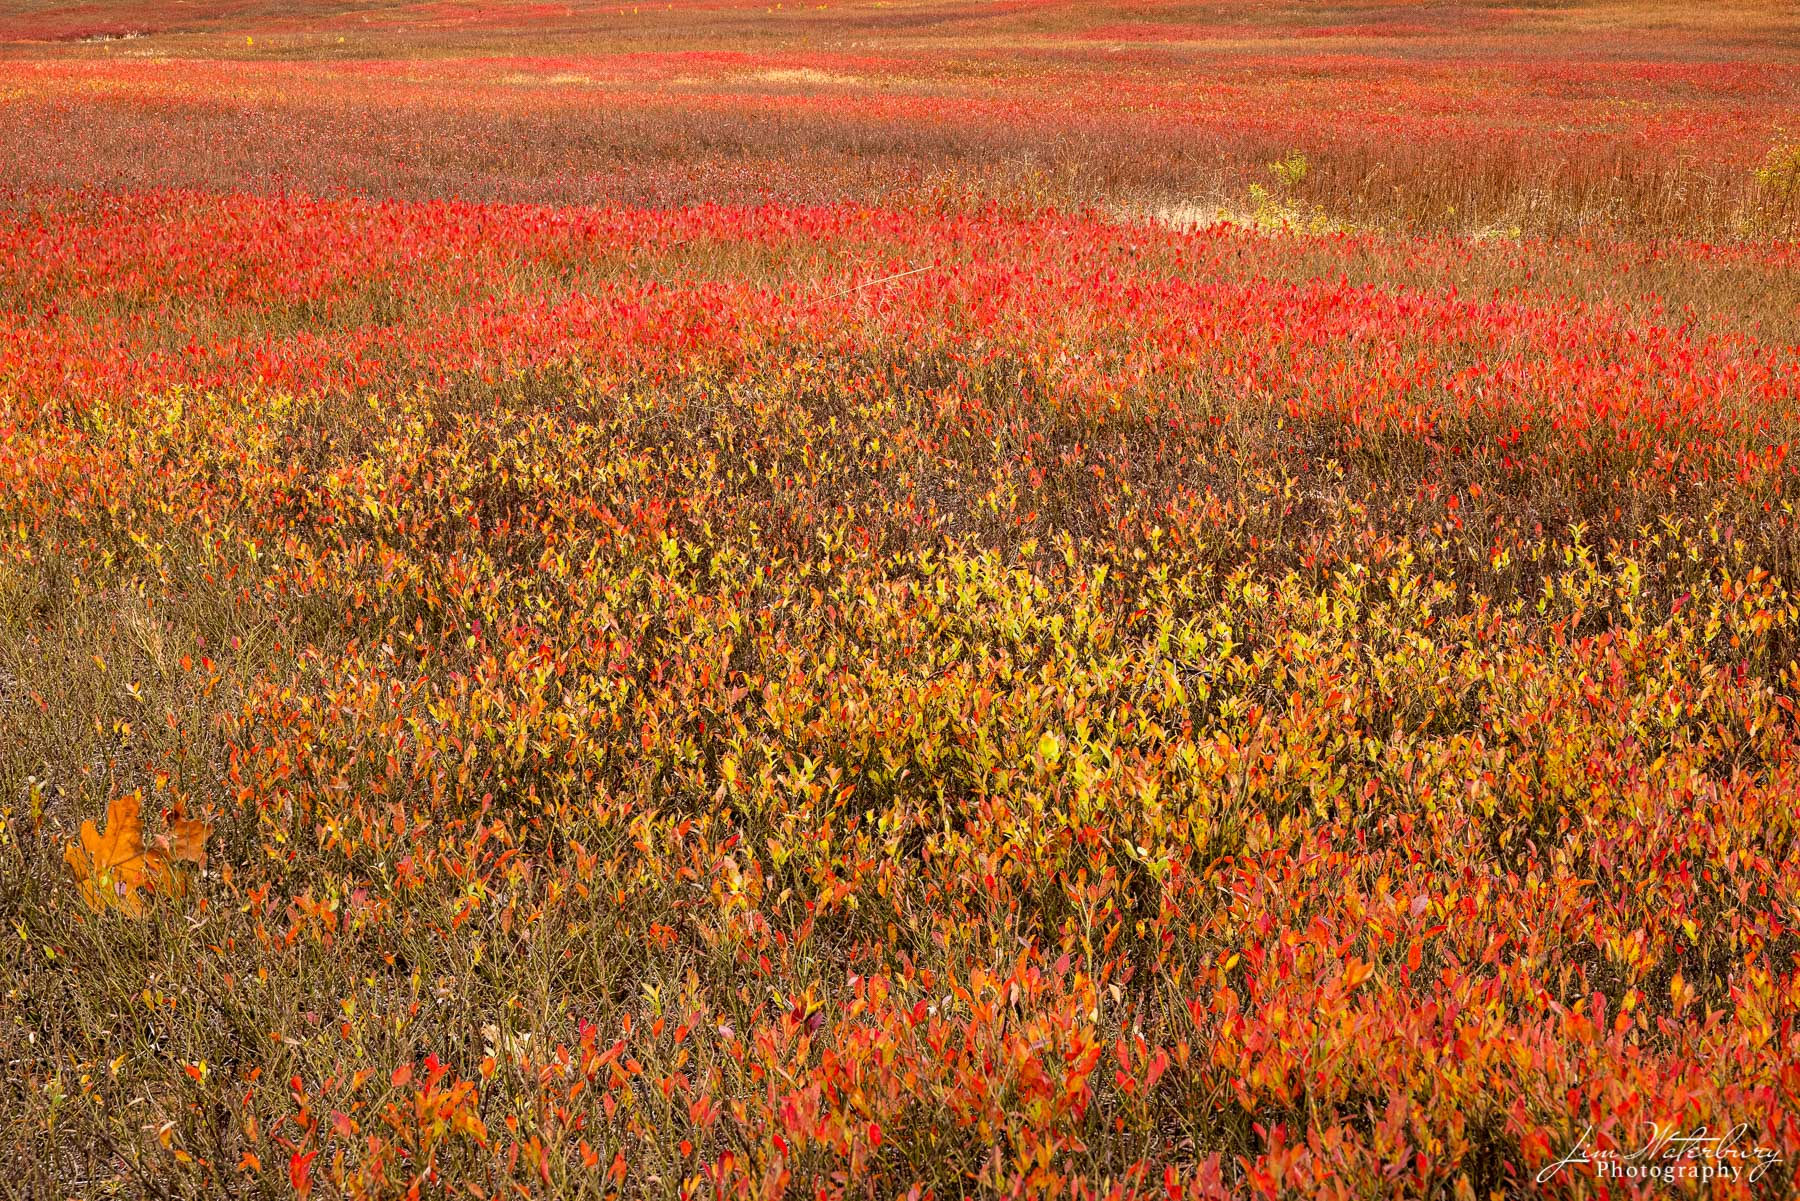 Blueberry fields, near Beth's Farm Market, on the road to Union, Me.